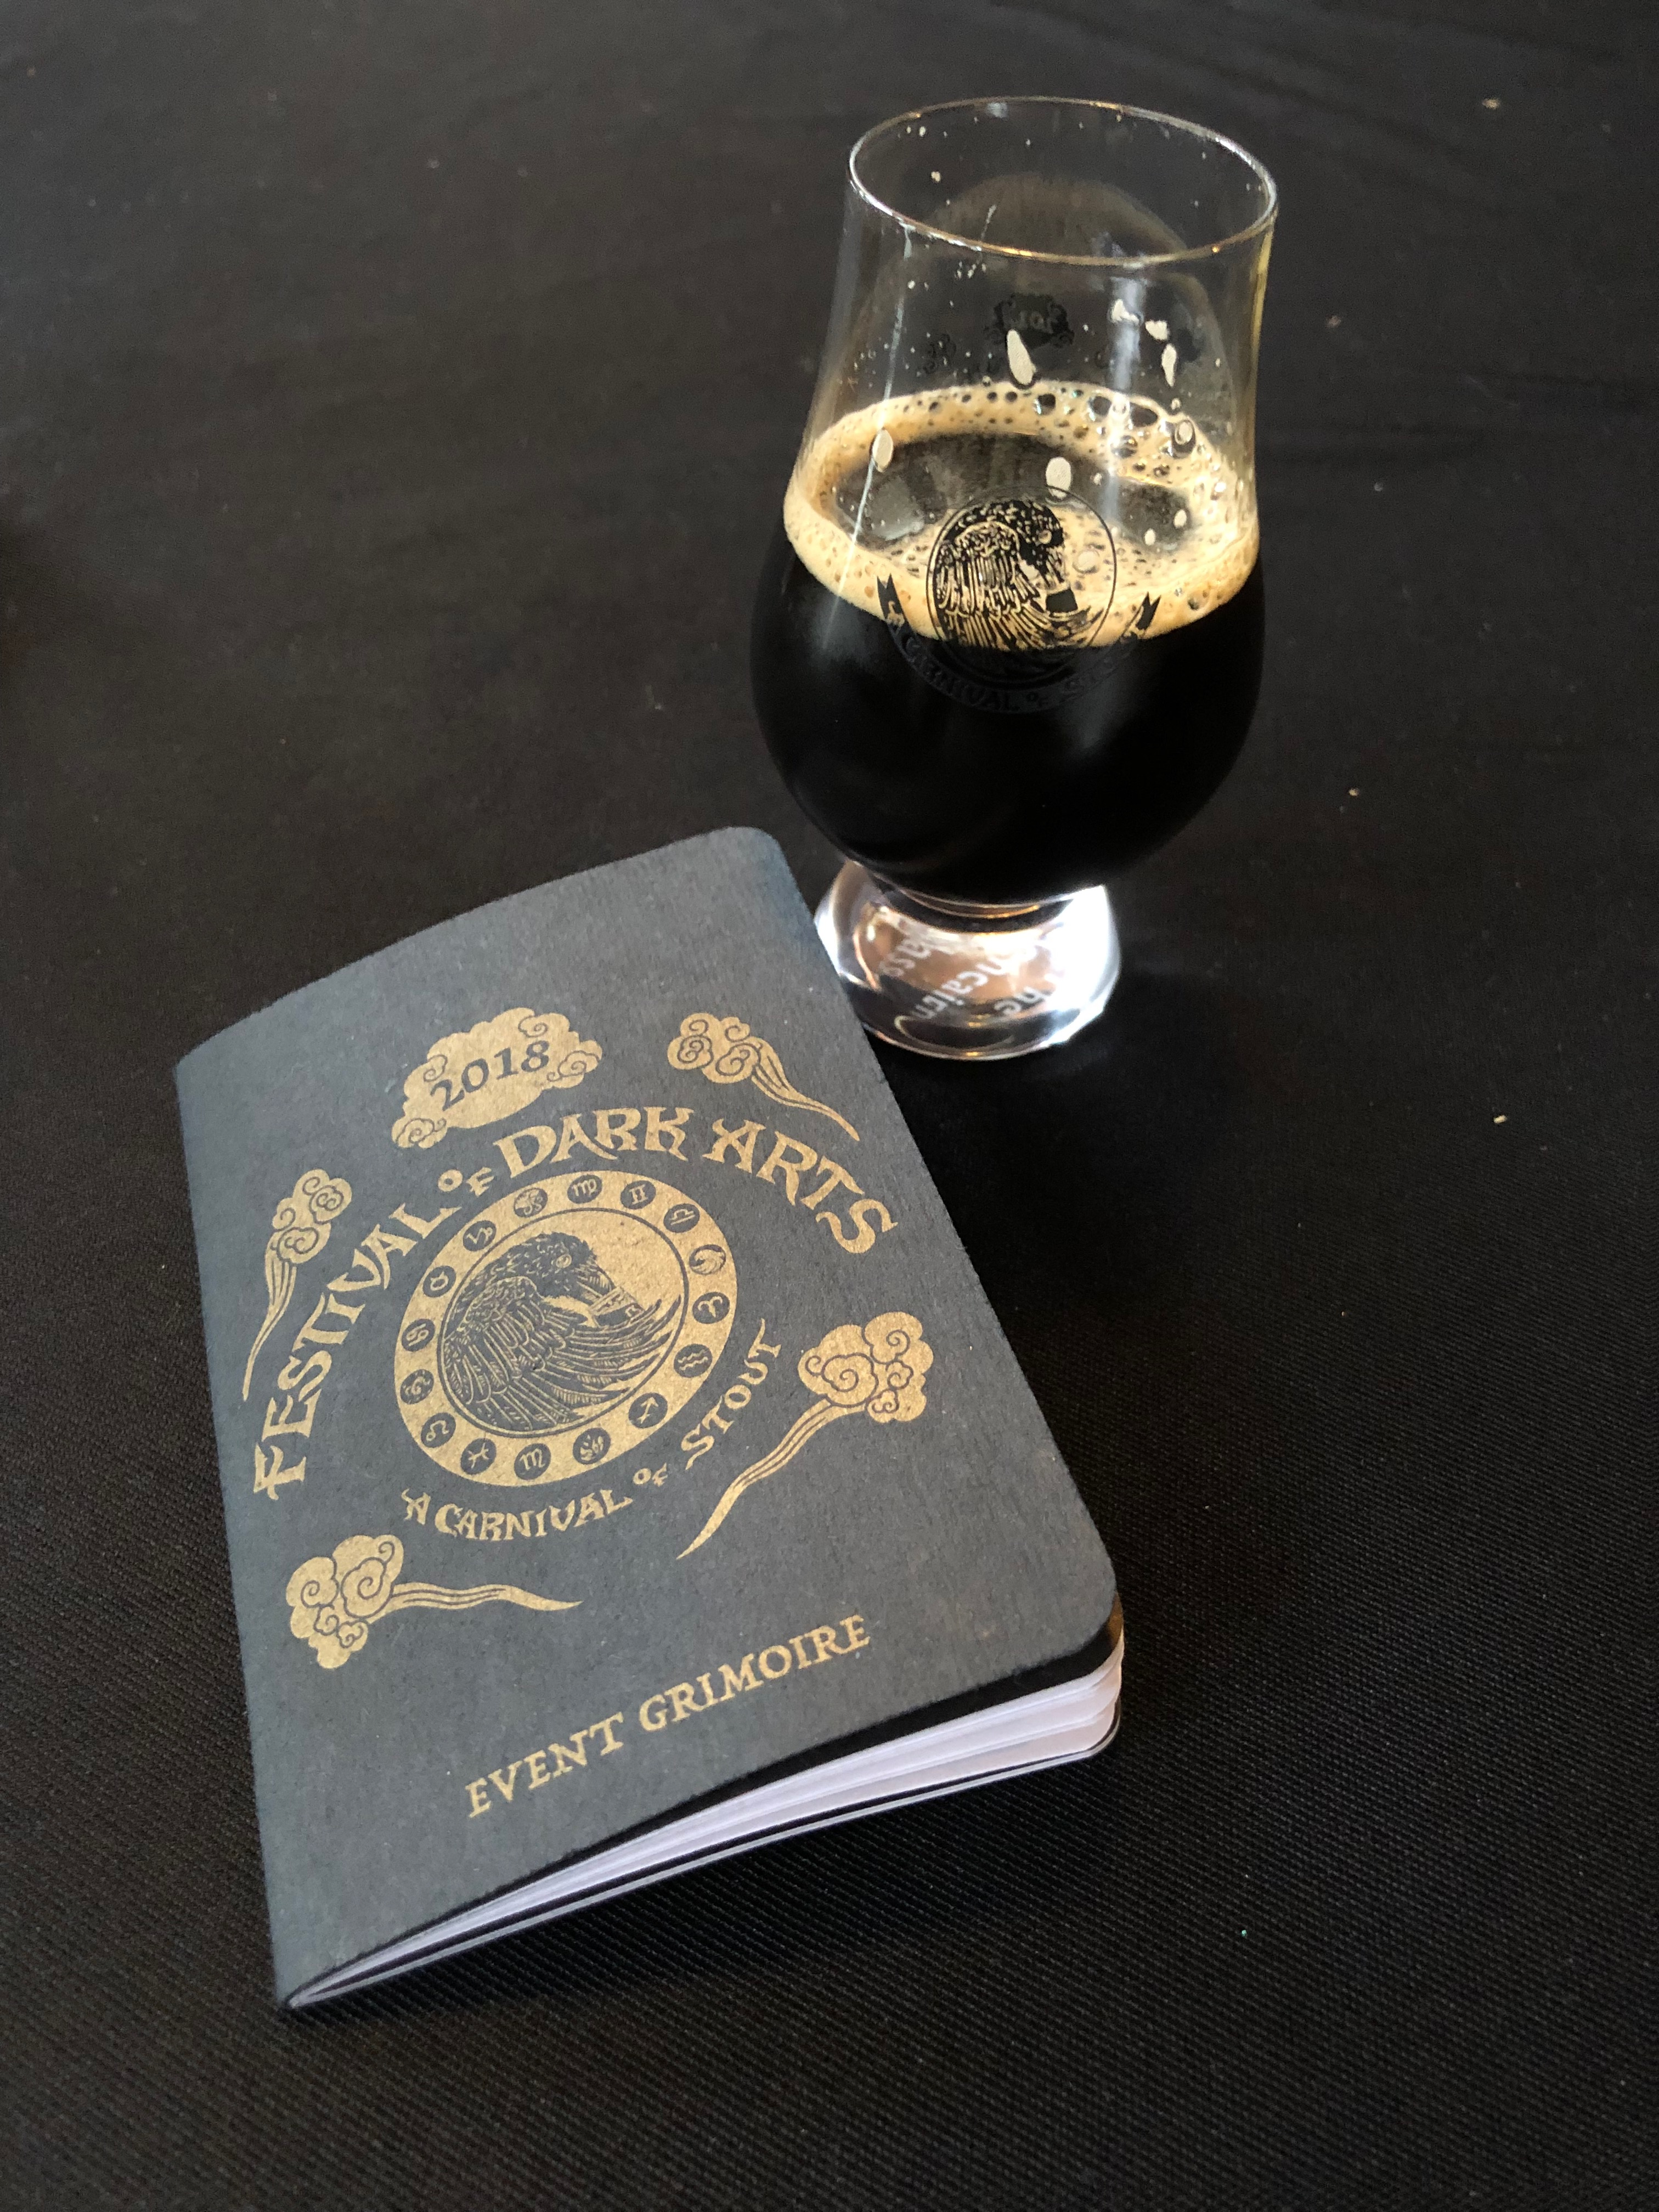 The 2018 Festival of Dark Arts at Fort George Brewery.